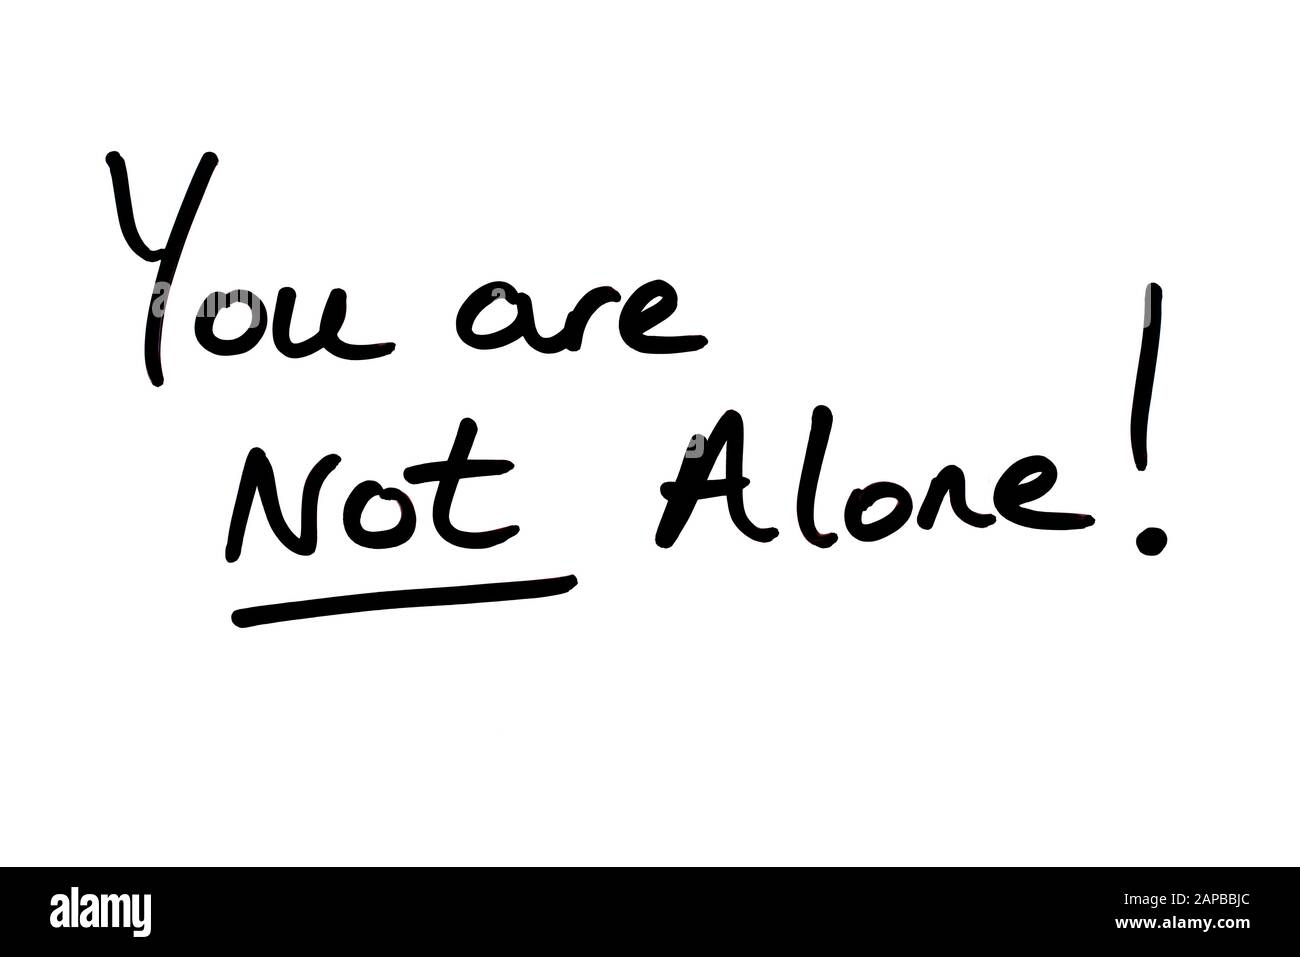 You are NOT Alone! handwritten on a white background. Stock Photo